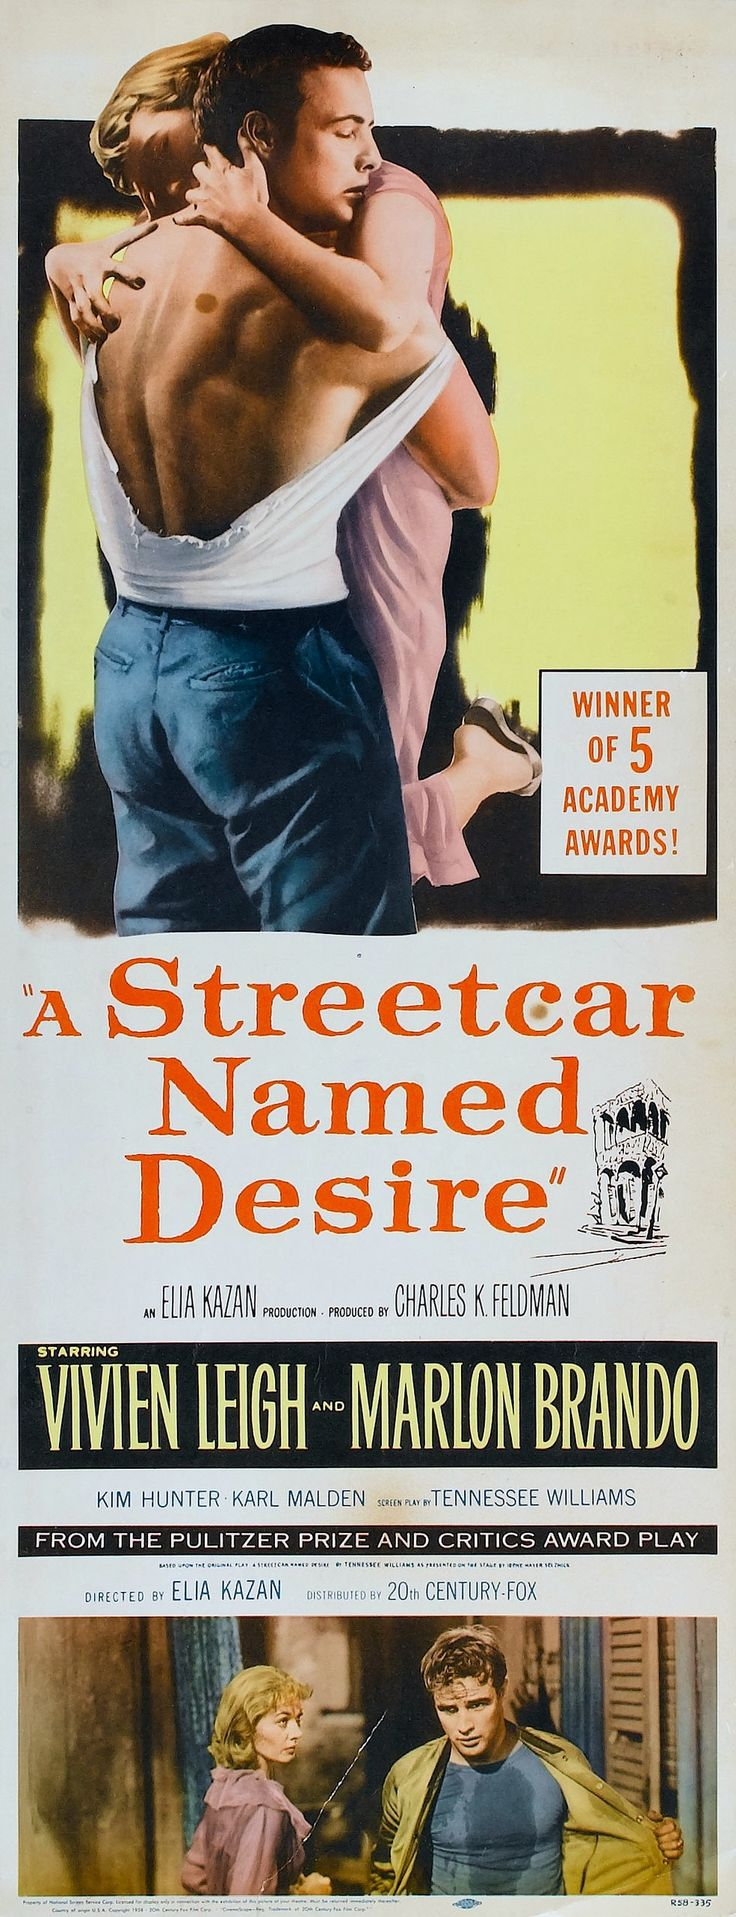 a review of tennessee williams streetcar named desire Buy a cheap copy of a streetcar named desire book by tennessee williams the pulitzer prize and drama critics circle award winning play reissued with an introduction by arthur miller (death of a salesman and the crucible), and williams free shipping over $10.